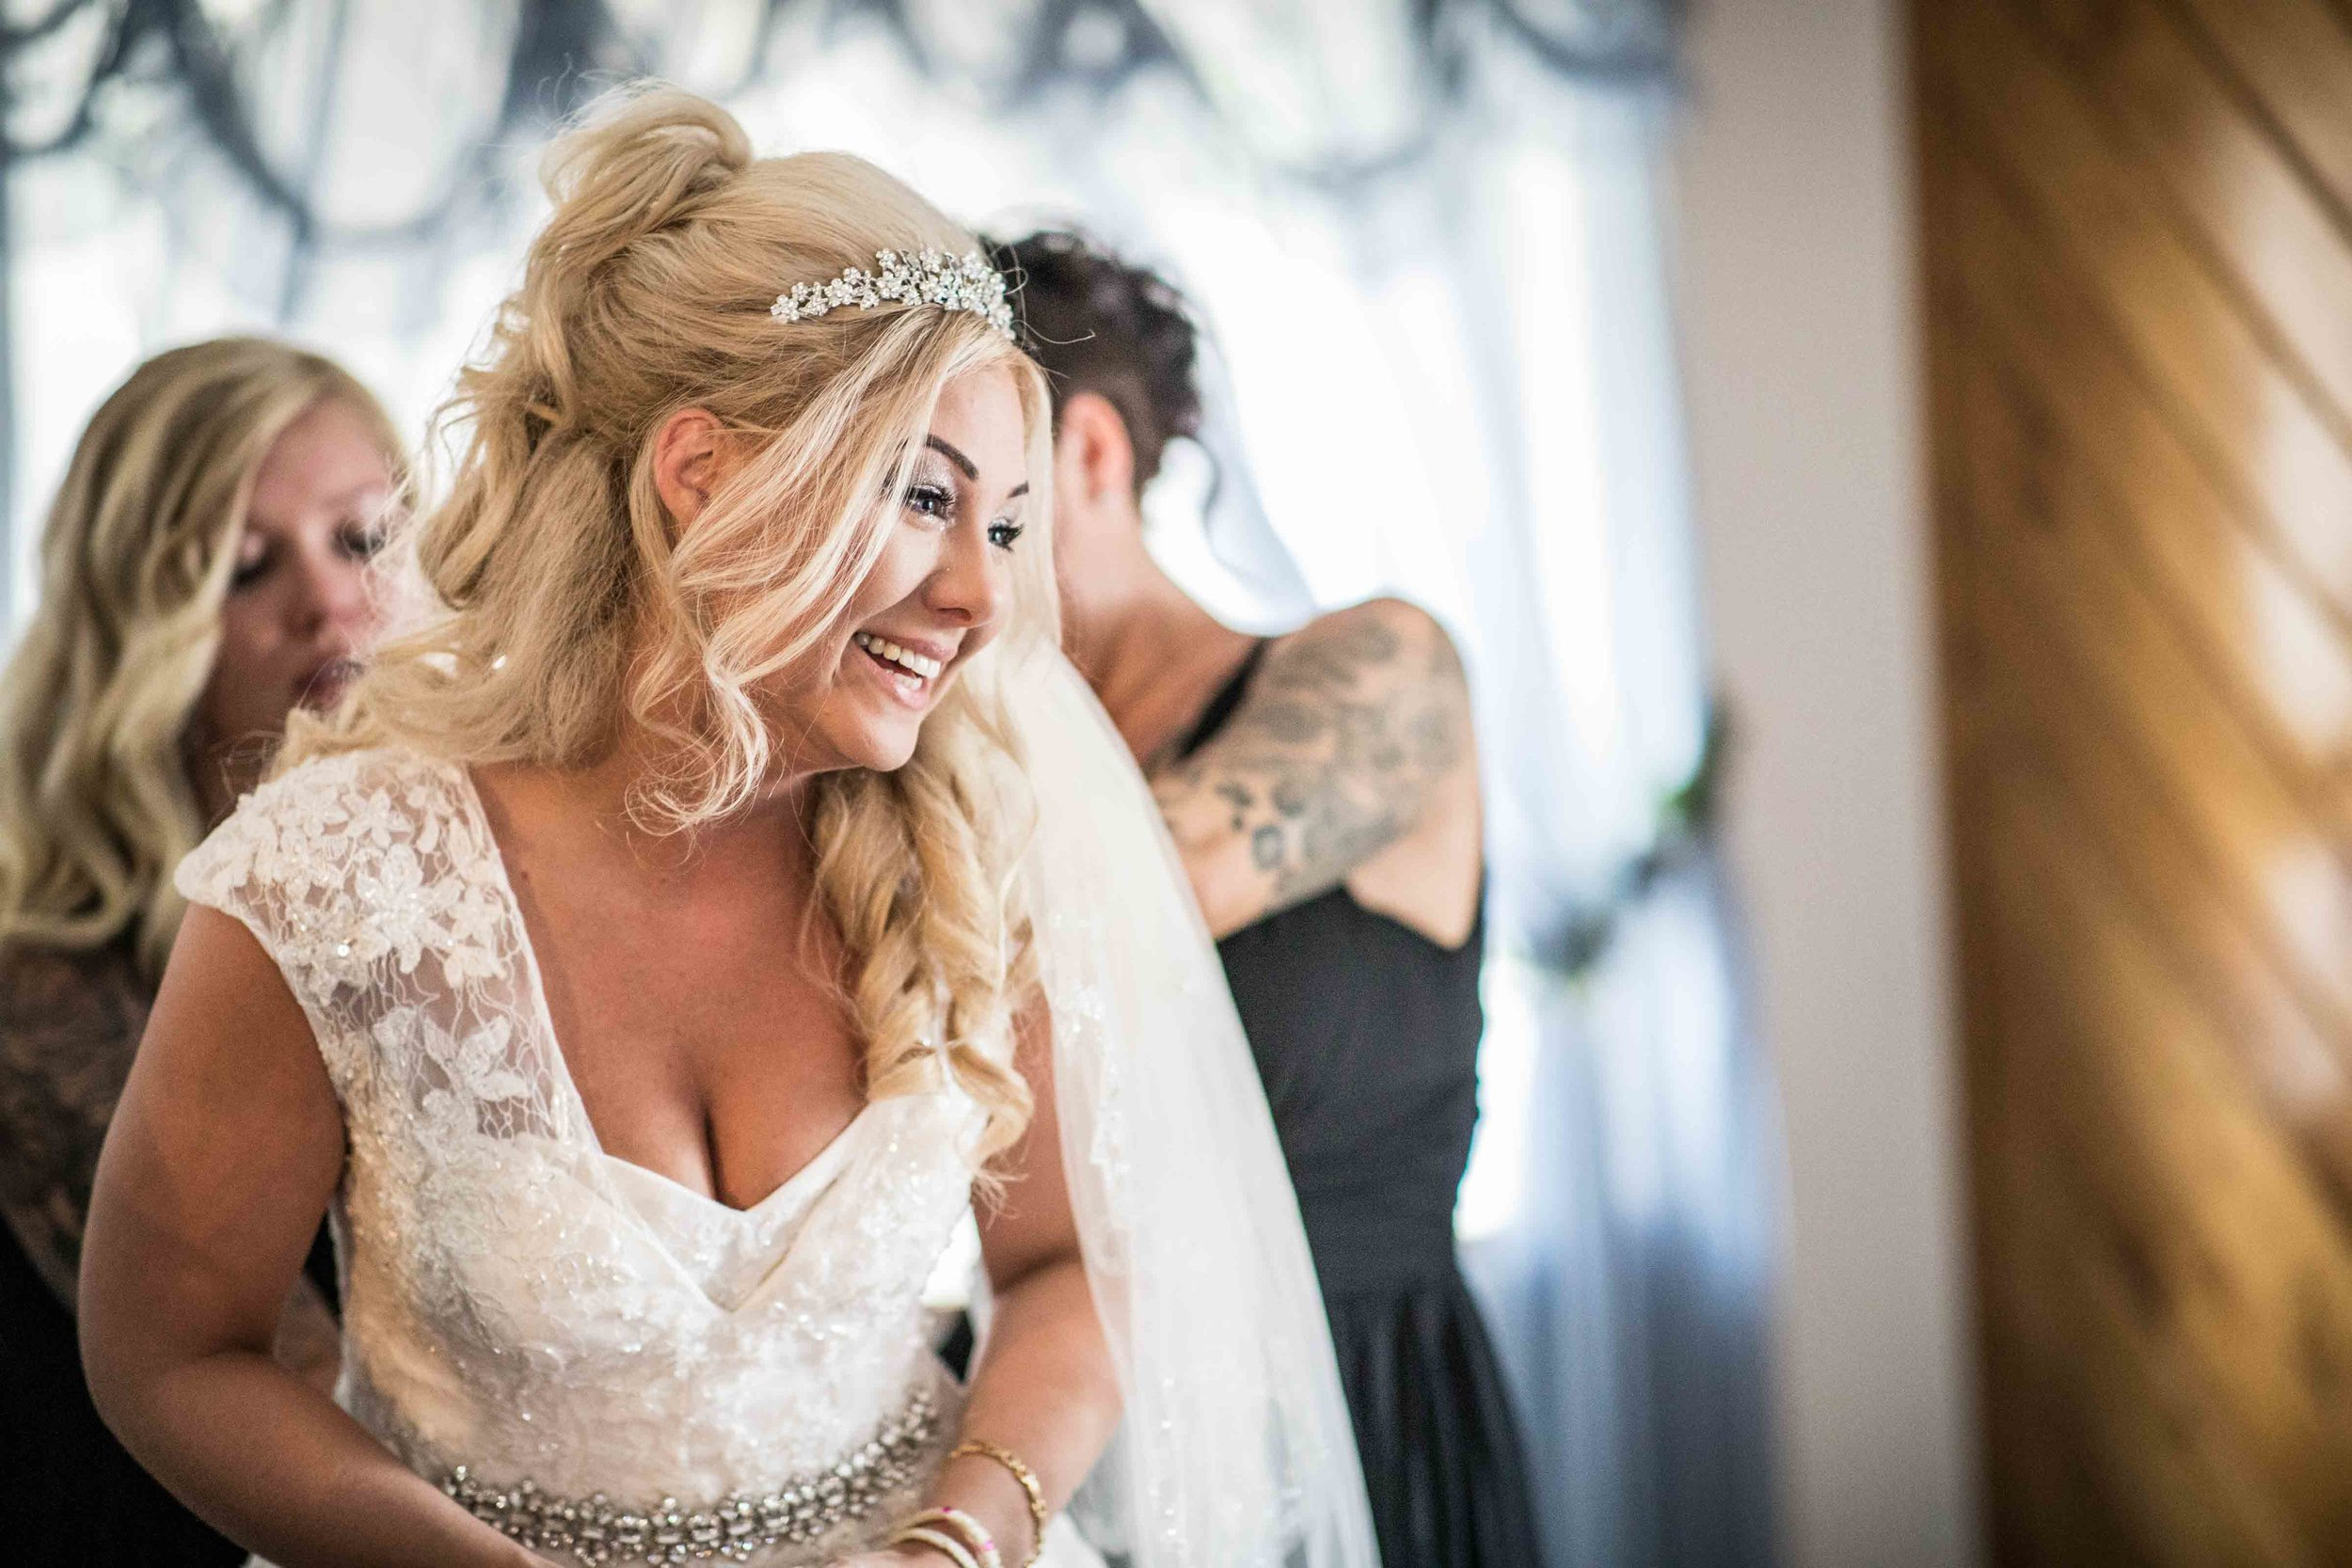 the bride laughs and cries all at the same time while her teams gets her ready